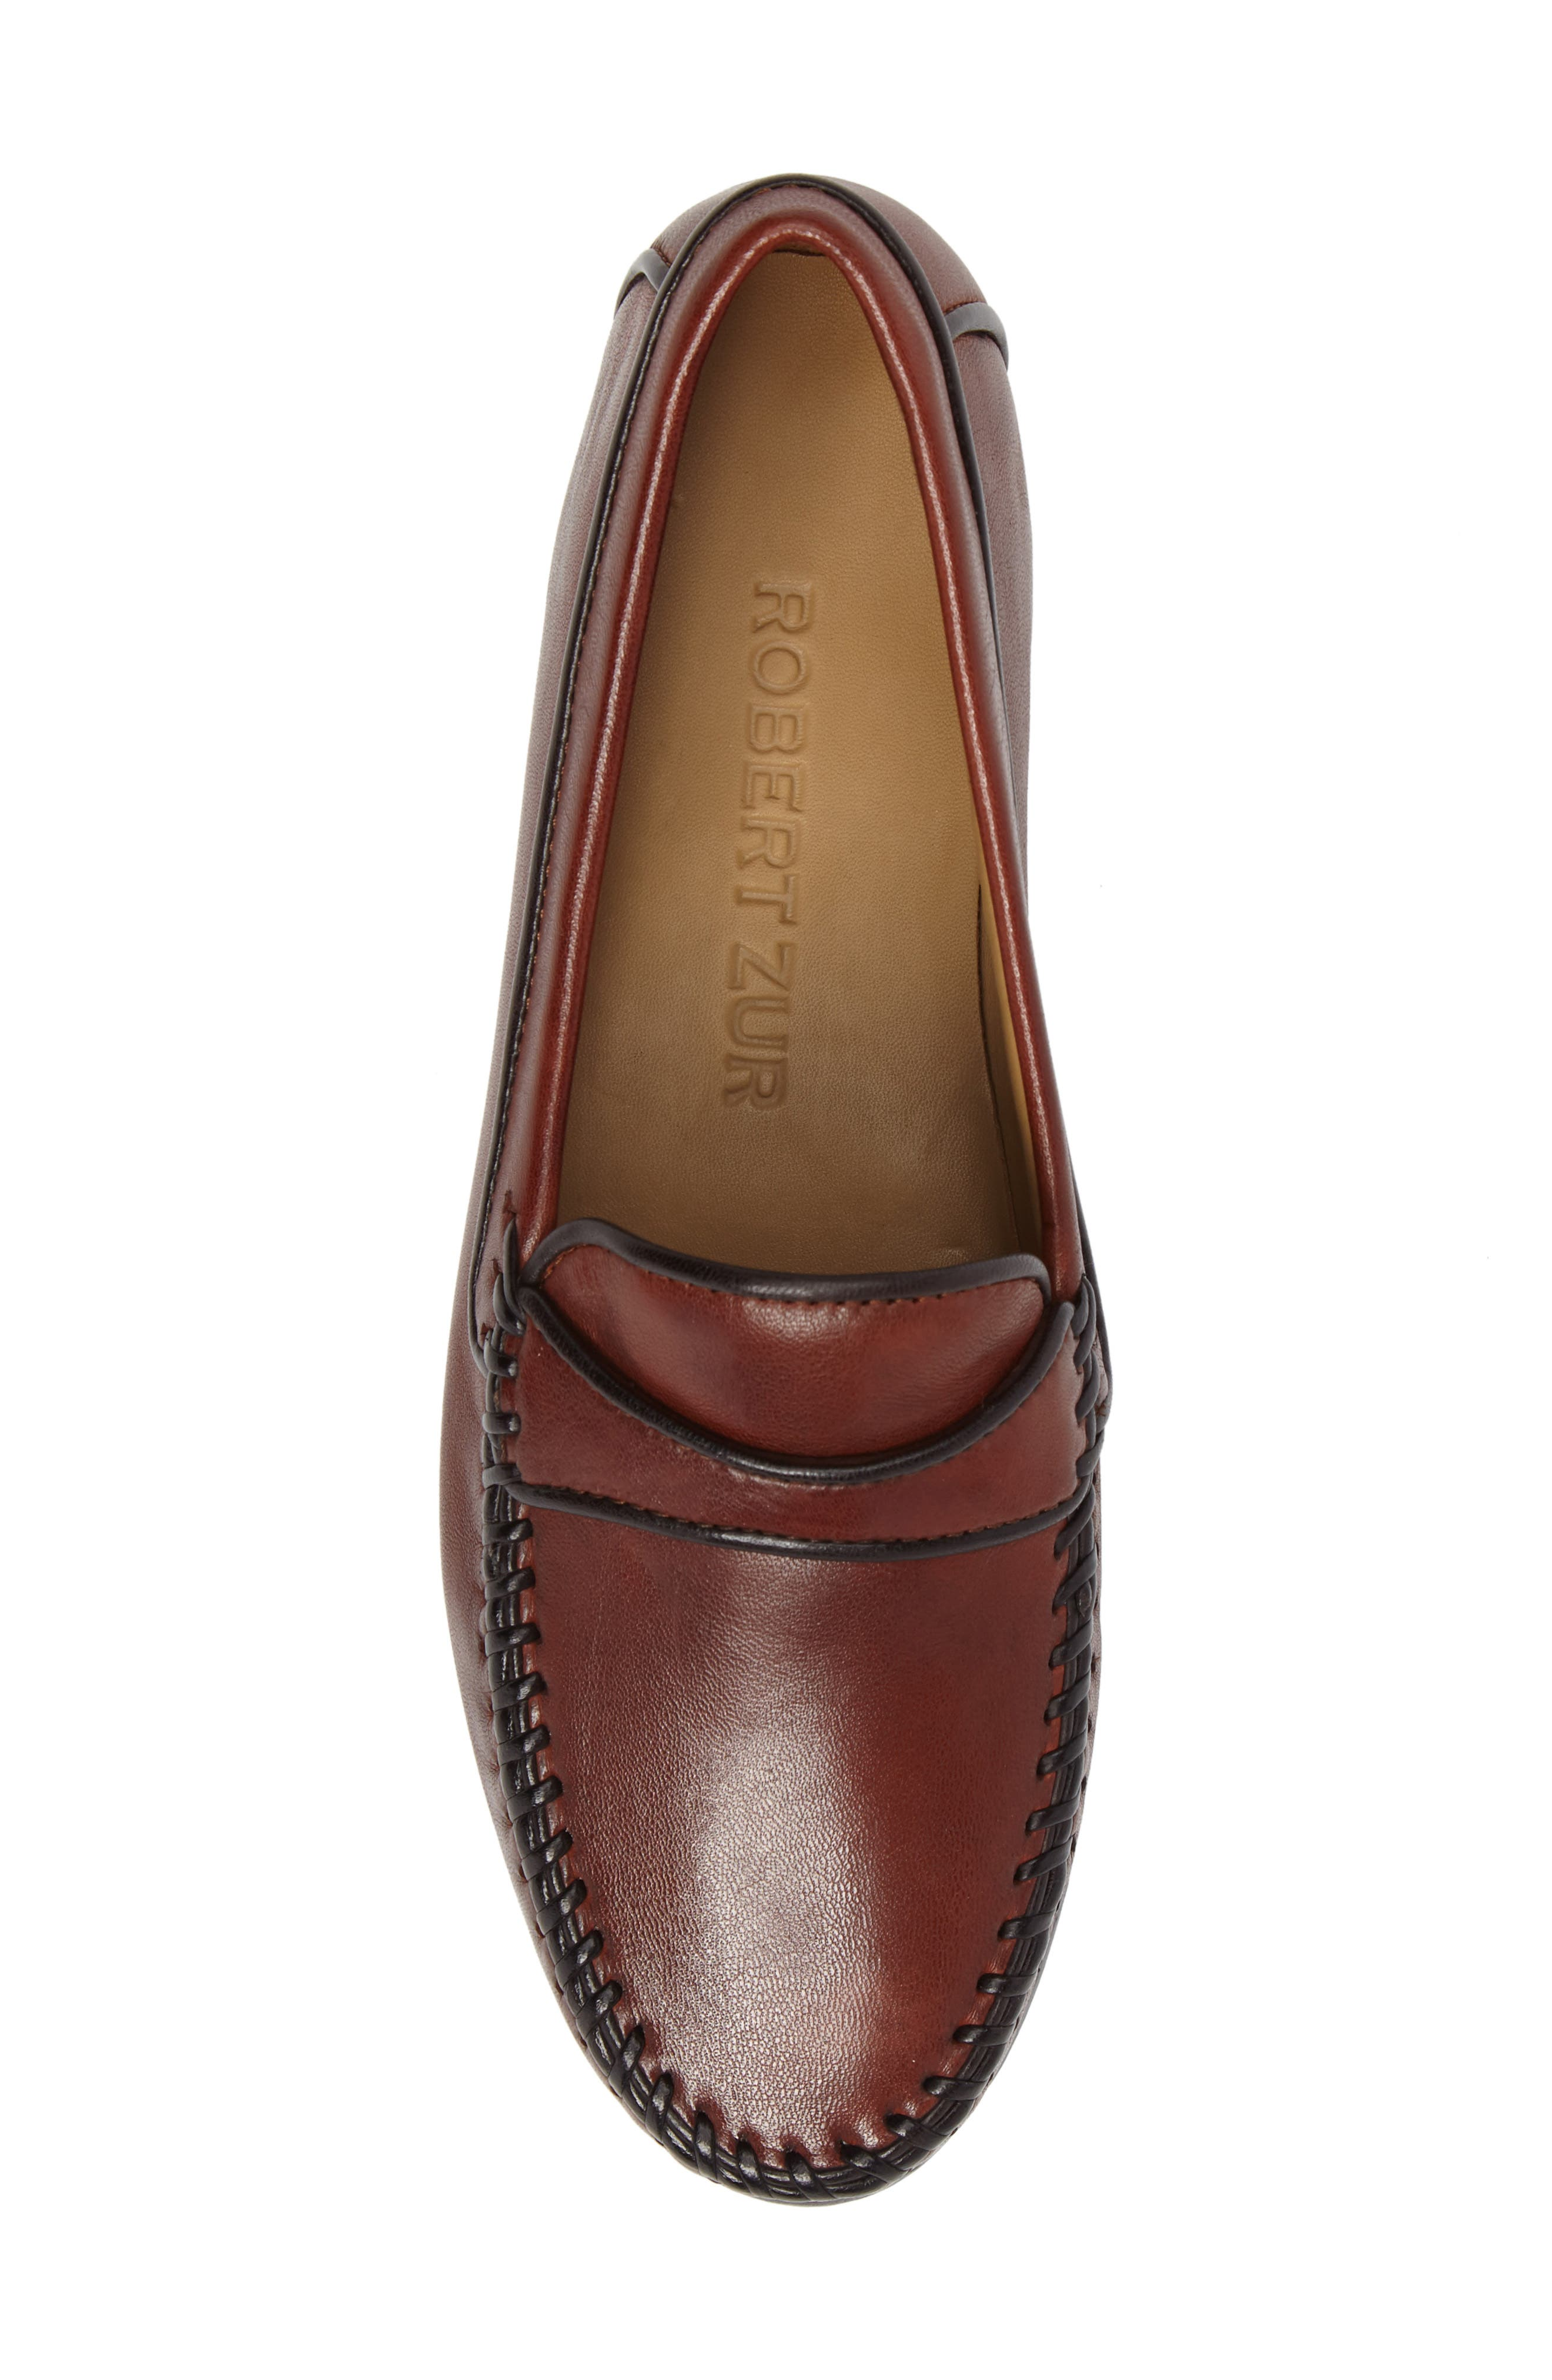 Aria Loafer,                             Alternate thumbnail 5, color,                             Vintage Luggage Leather